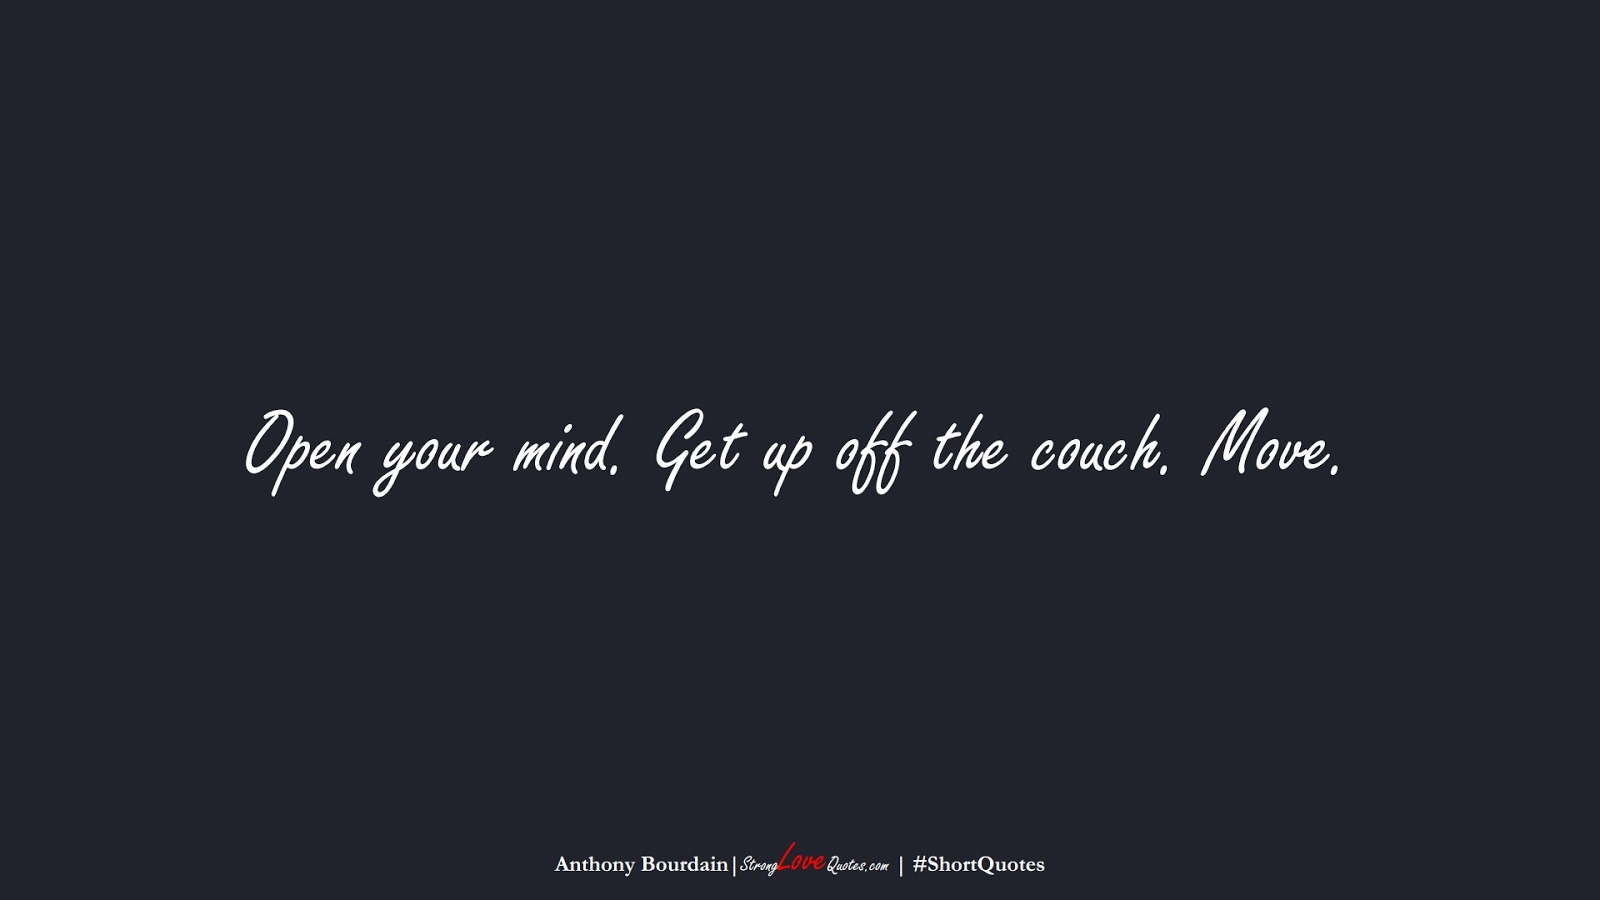 Open your mind. Get up off the couch. Move. (Anthony Bourdain);  #ShortQuotes